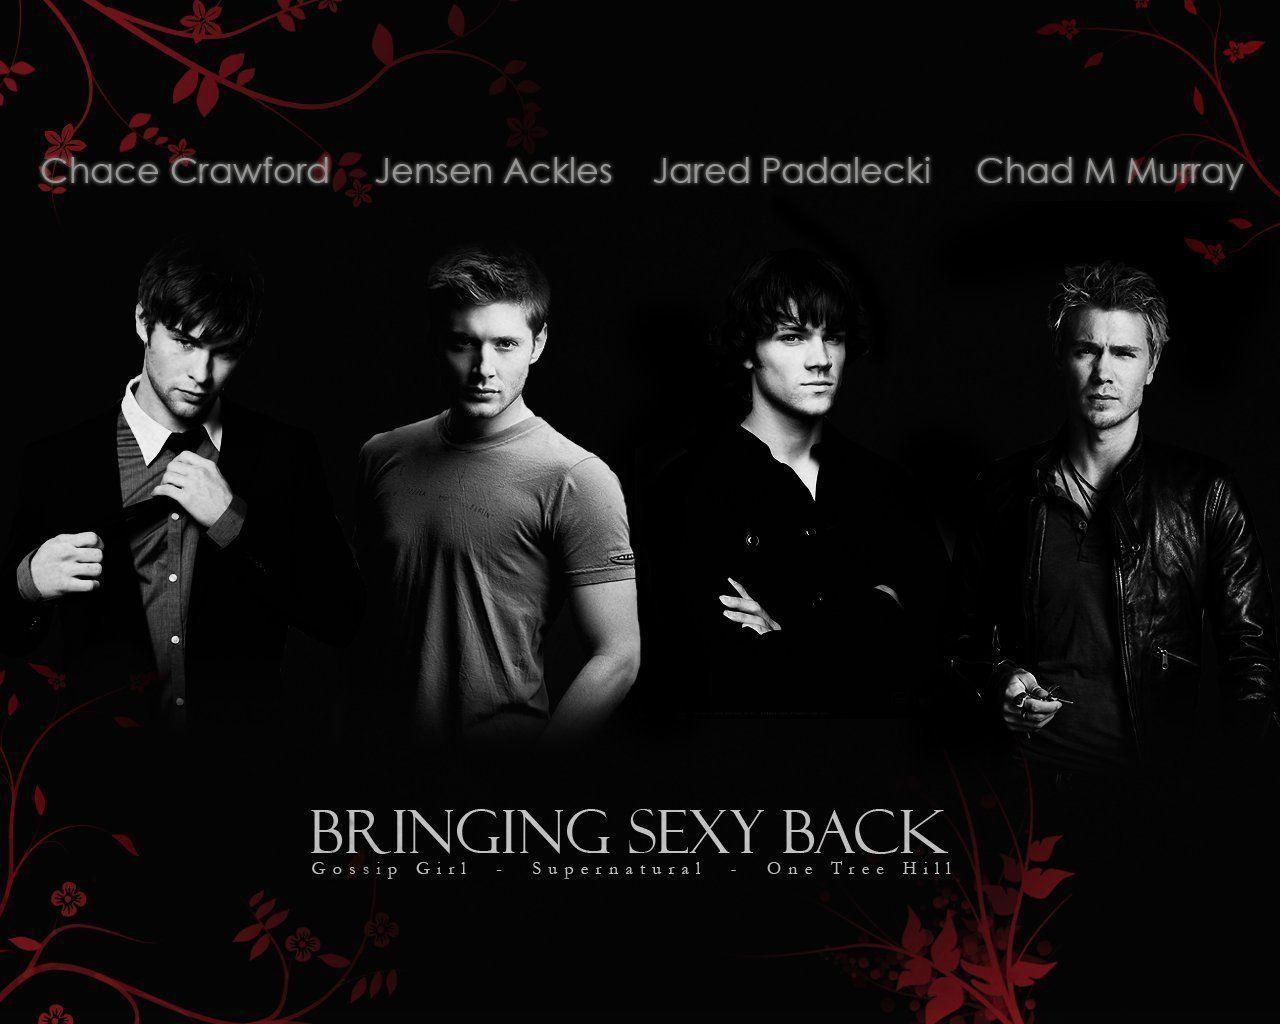 Supernatural Desktop Backgrounds